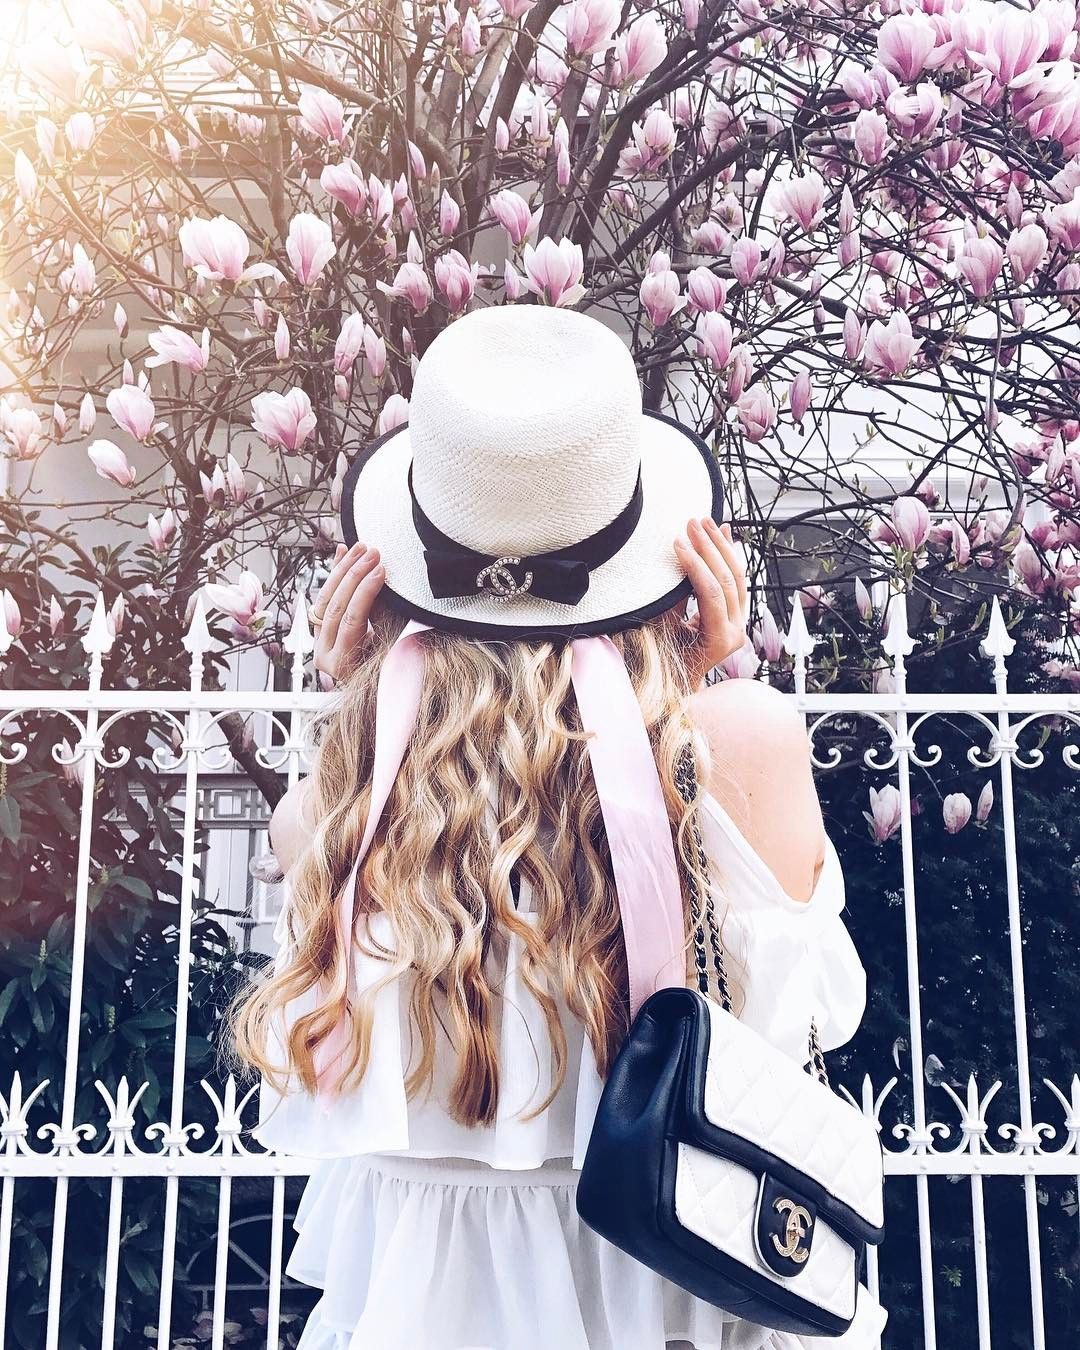 Munich The Blond Macaron Theblondmacaron On Instagram Spring Arrived At My City Cherryblossomgirl Hair By Lo Girly Fashion Girl Photography Girly Girl